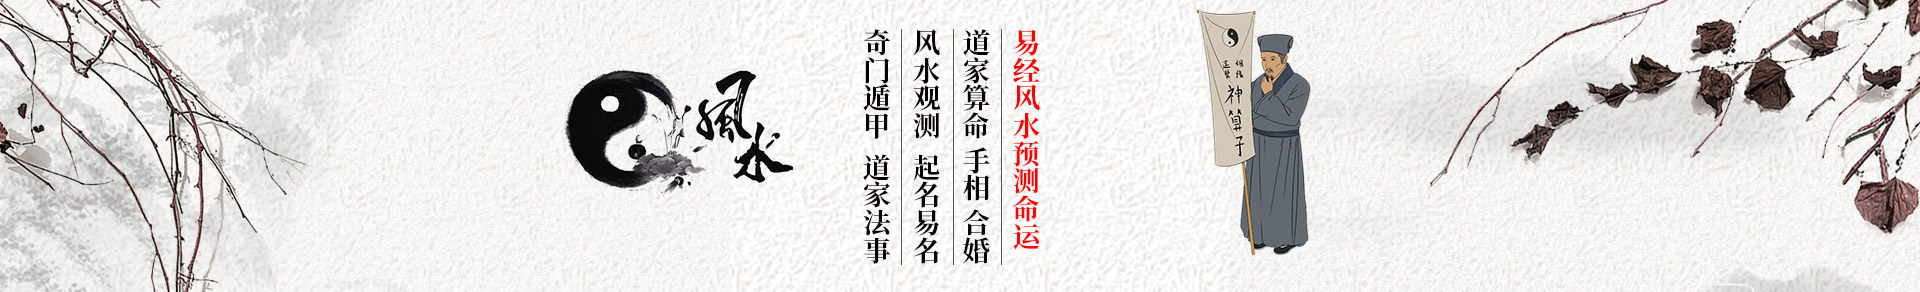 http://www.chenhongyou.com/data/images/slide/20190911181842_779.jpg